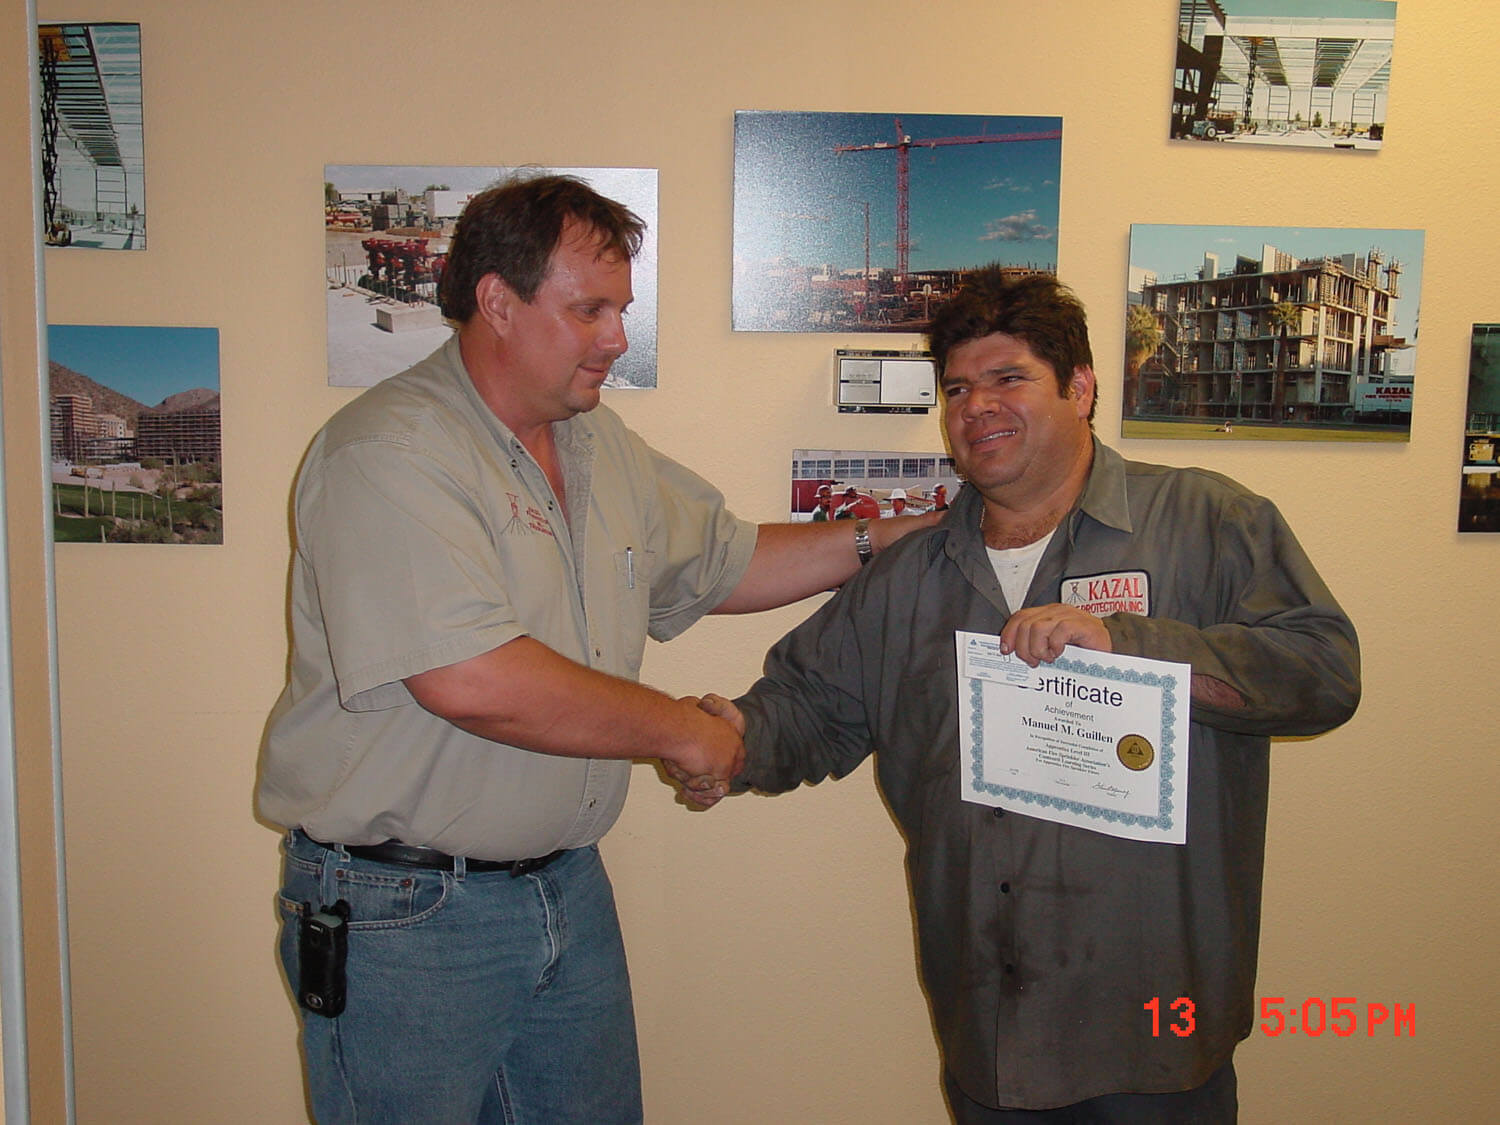 Worker receiving certificate